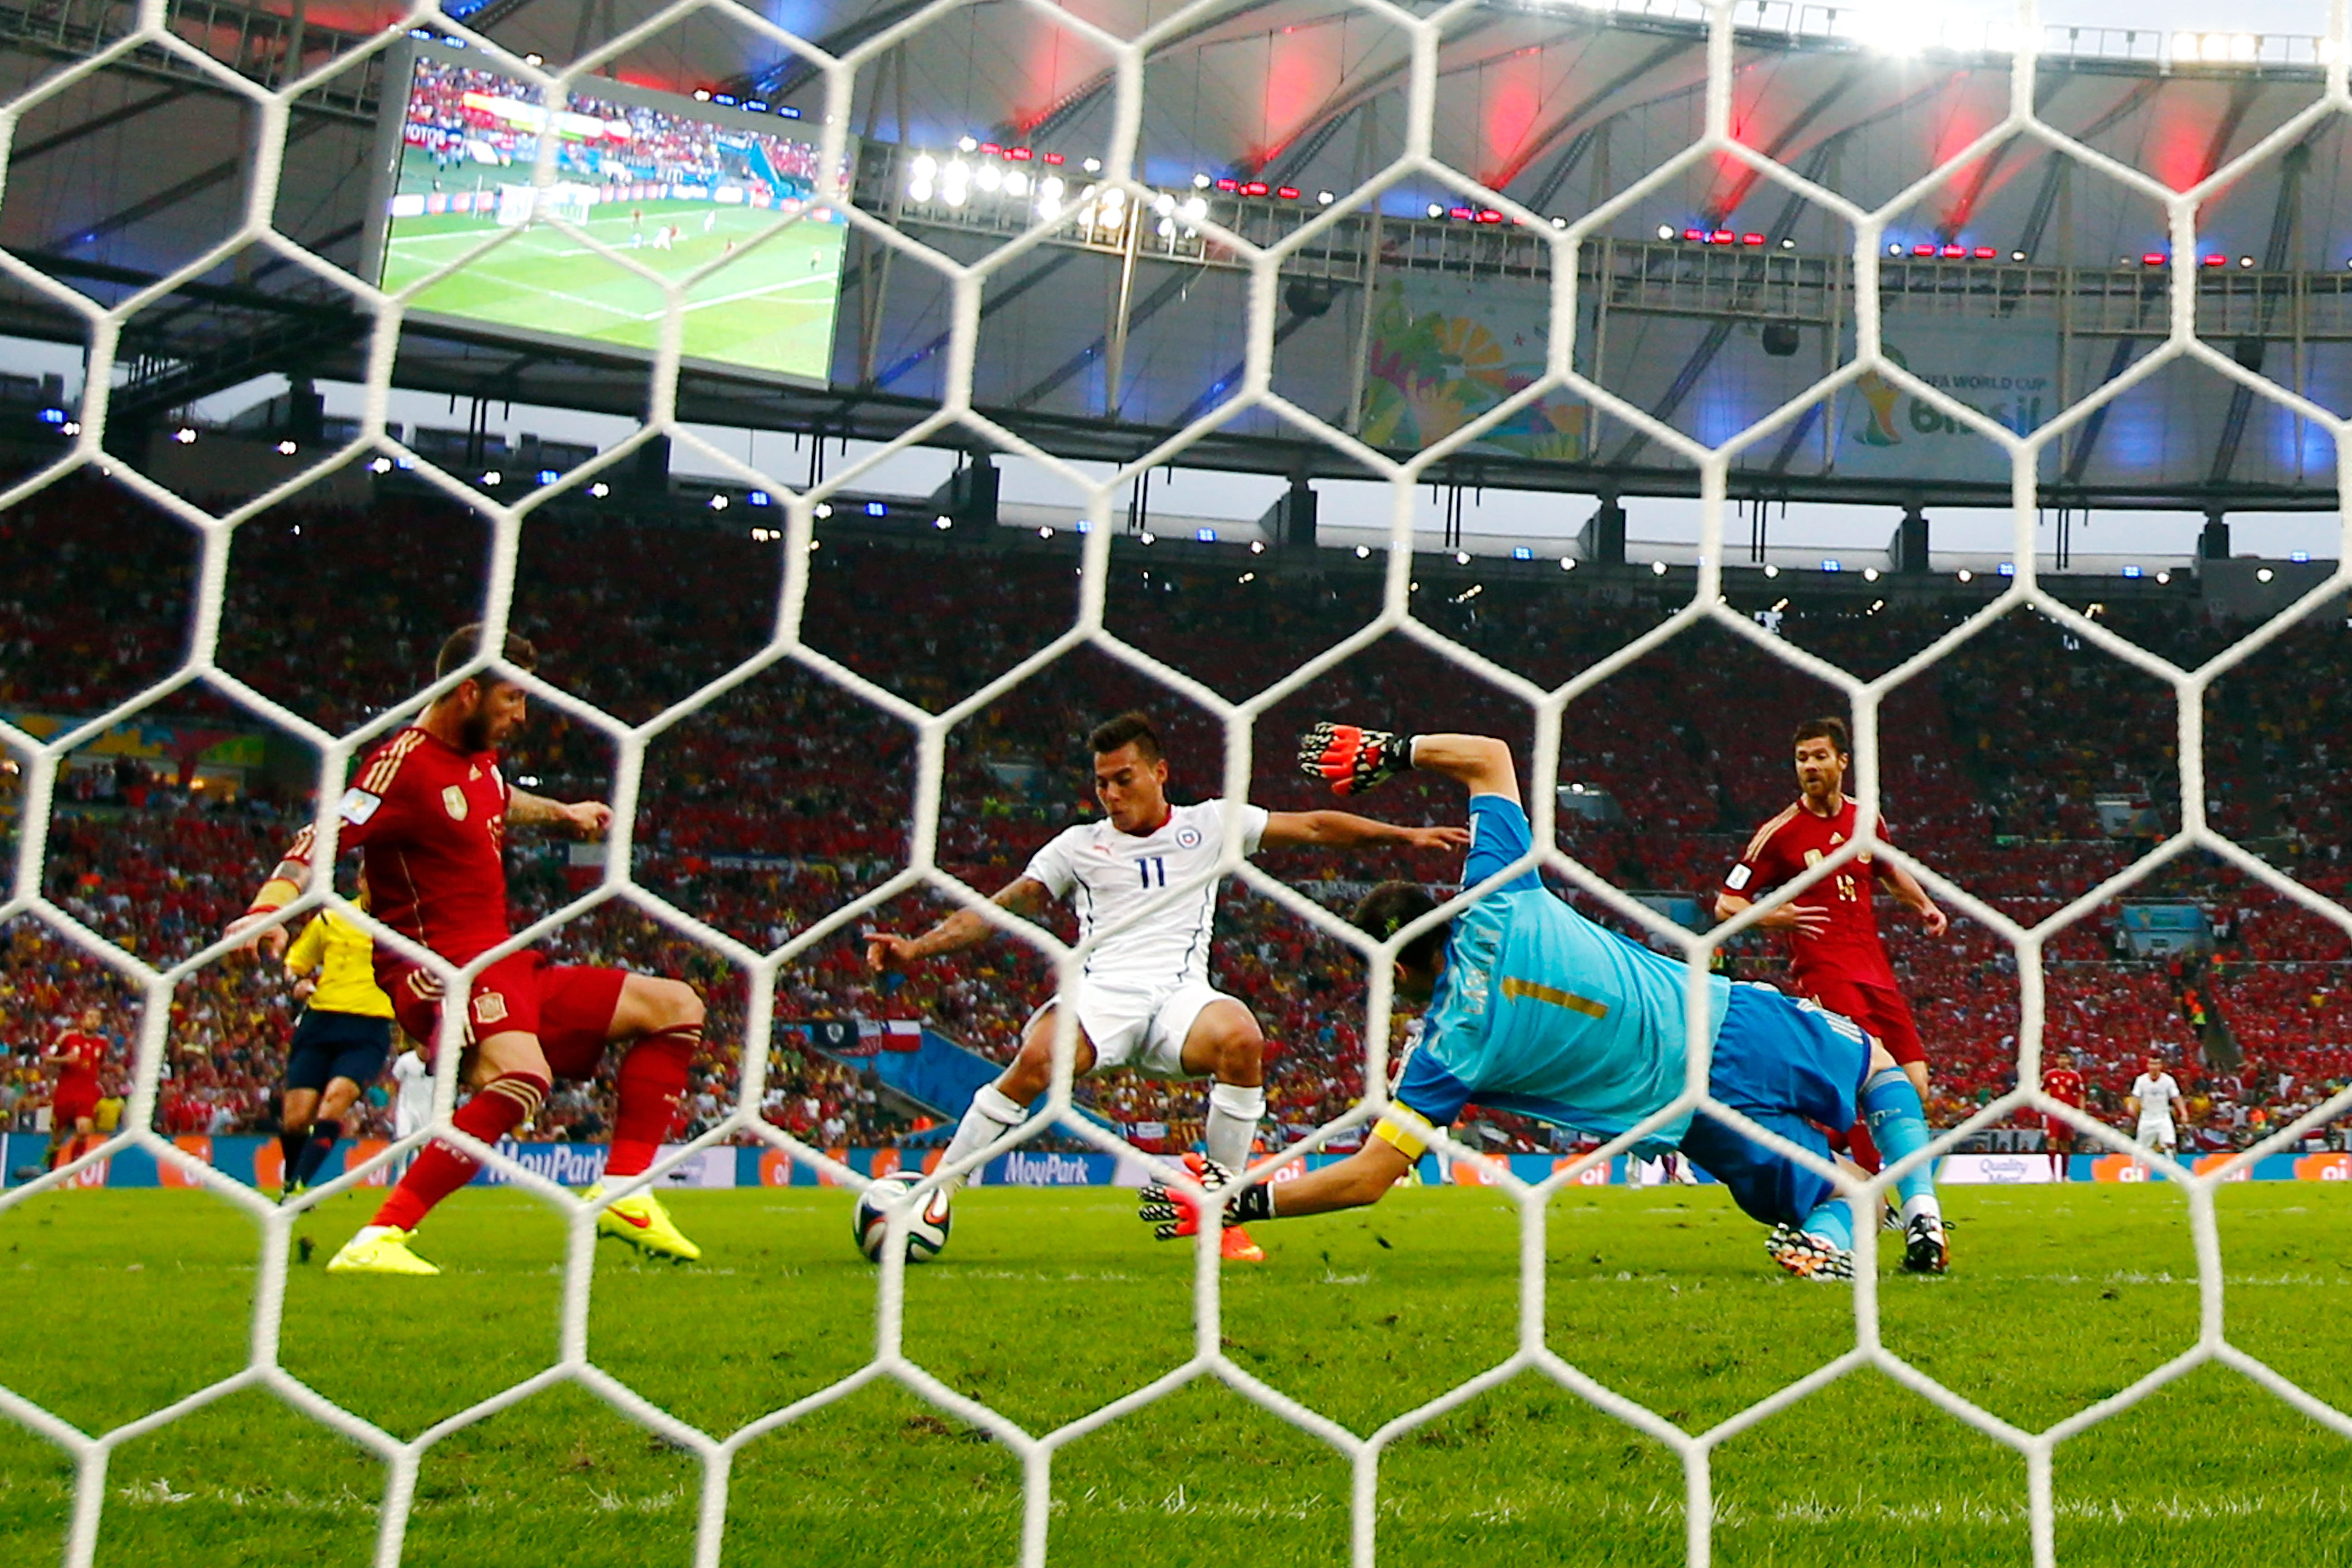 Eduardo Vargas of Chile shoots and scores his team's first goal past Sergio Ramos and goalkeeper Iker Casillas of Spain during the 2014 FIFA World Cup Brazil Group B match between Spain and Chile at Maracana on June 18, 2014 in Rio de Janeiro.